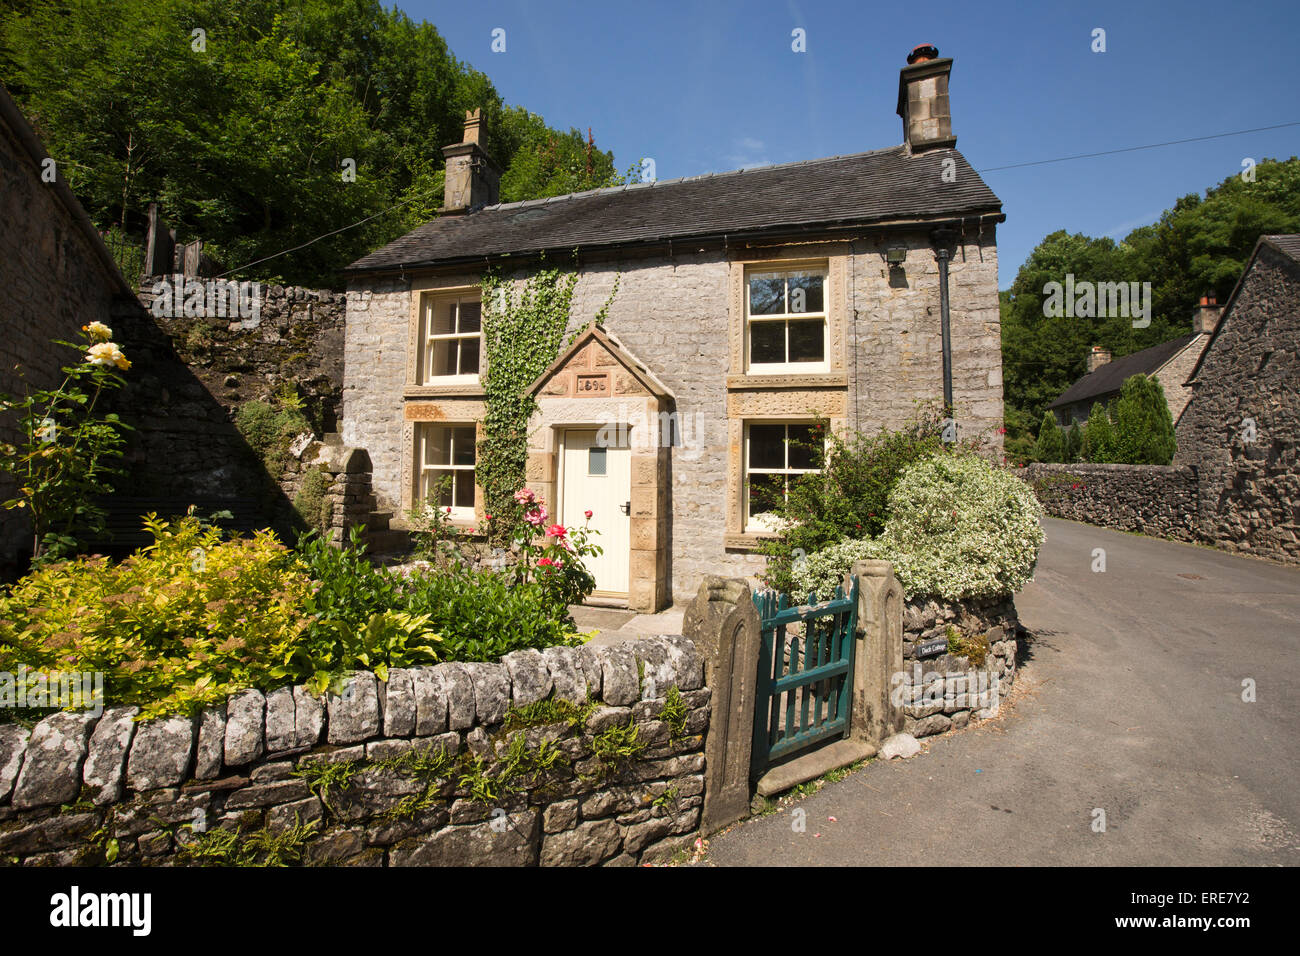 UK, England, Staffordshire, Dovedale, Milldale village, late Victorian cottage Stock Photo